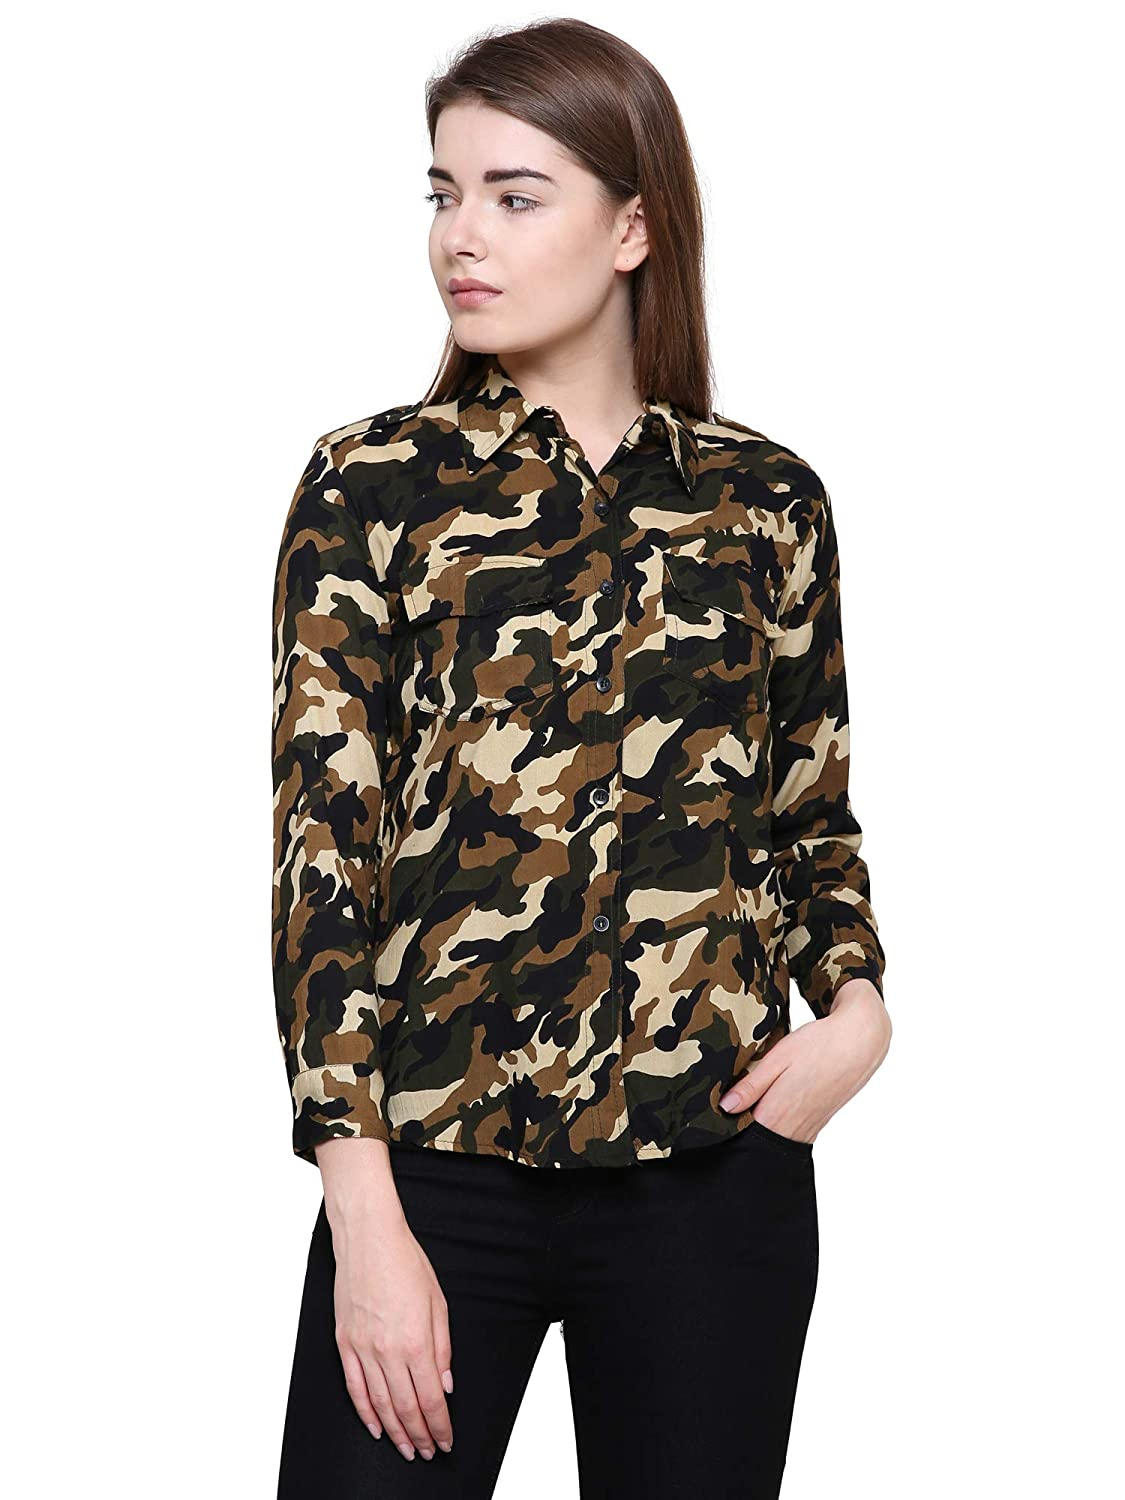 55e48f37 POISON IVY Women's Casual Military Green Shirt: Amazon.in: Clothing &  Accessories